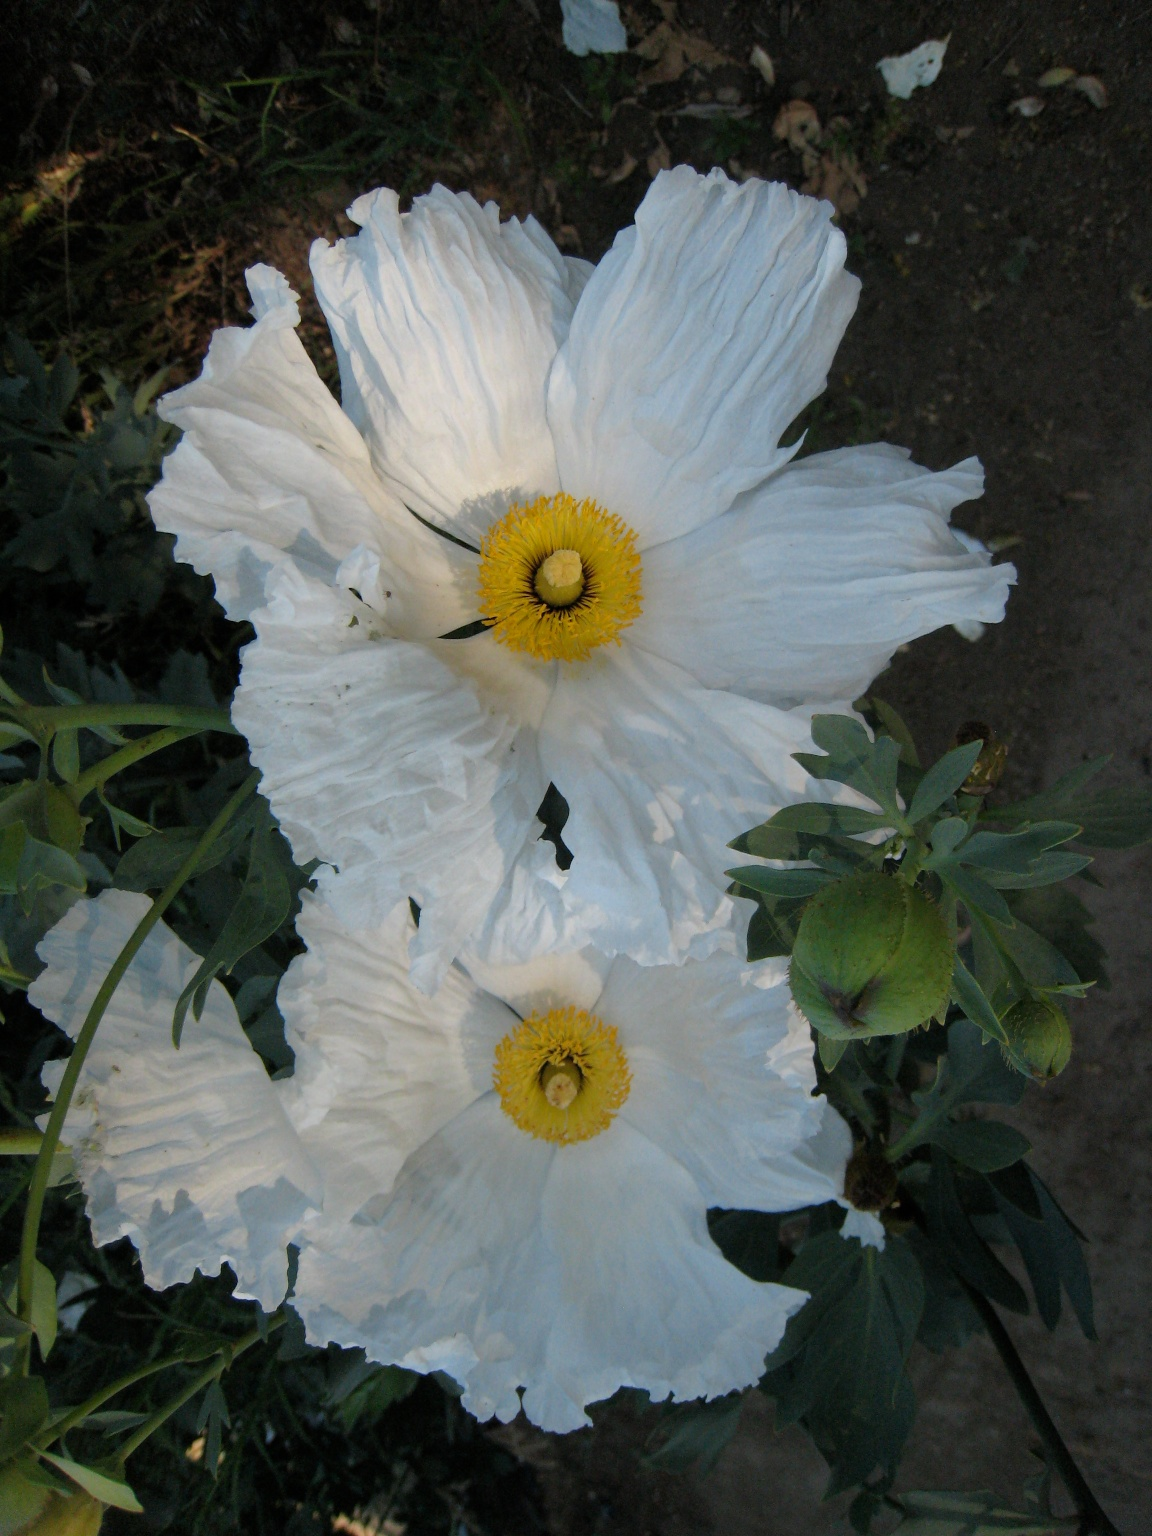 Matilija poppy queen of california flowers california native image romneya white cloud matilija poppy mightylinksfo